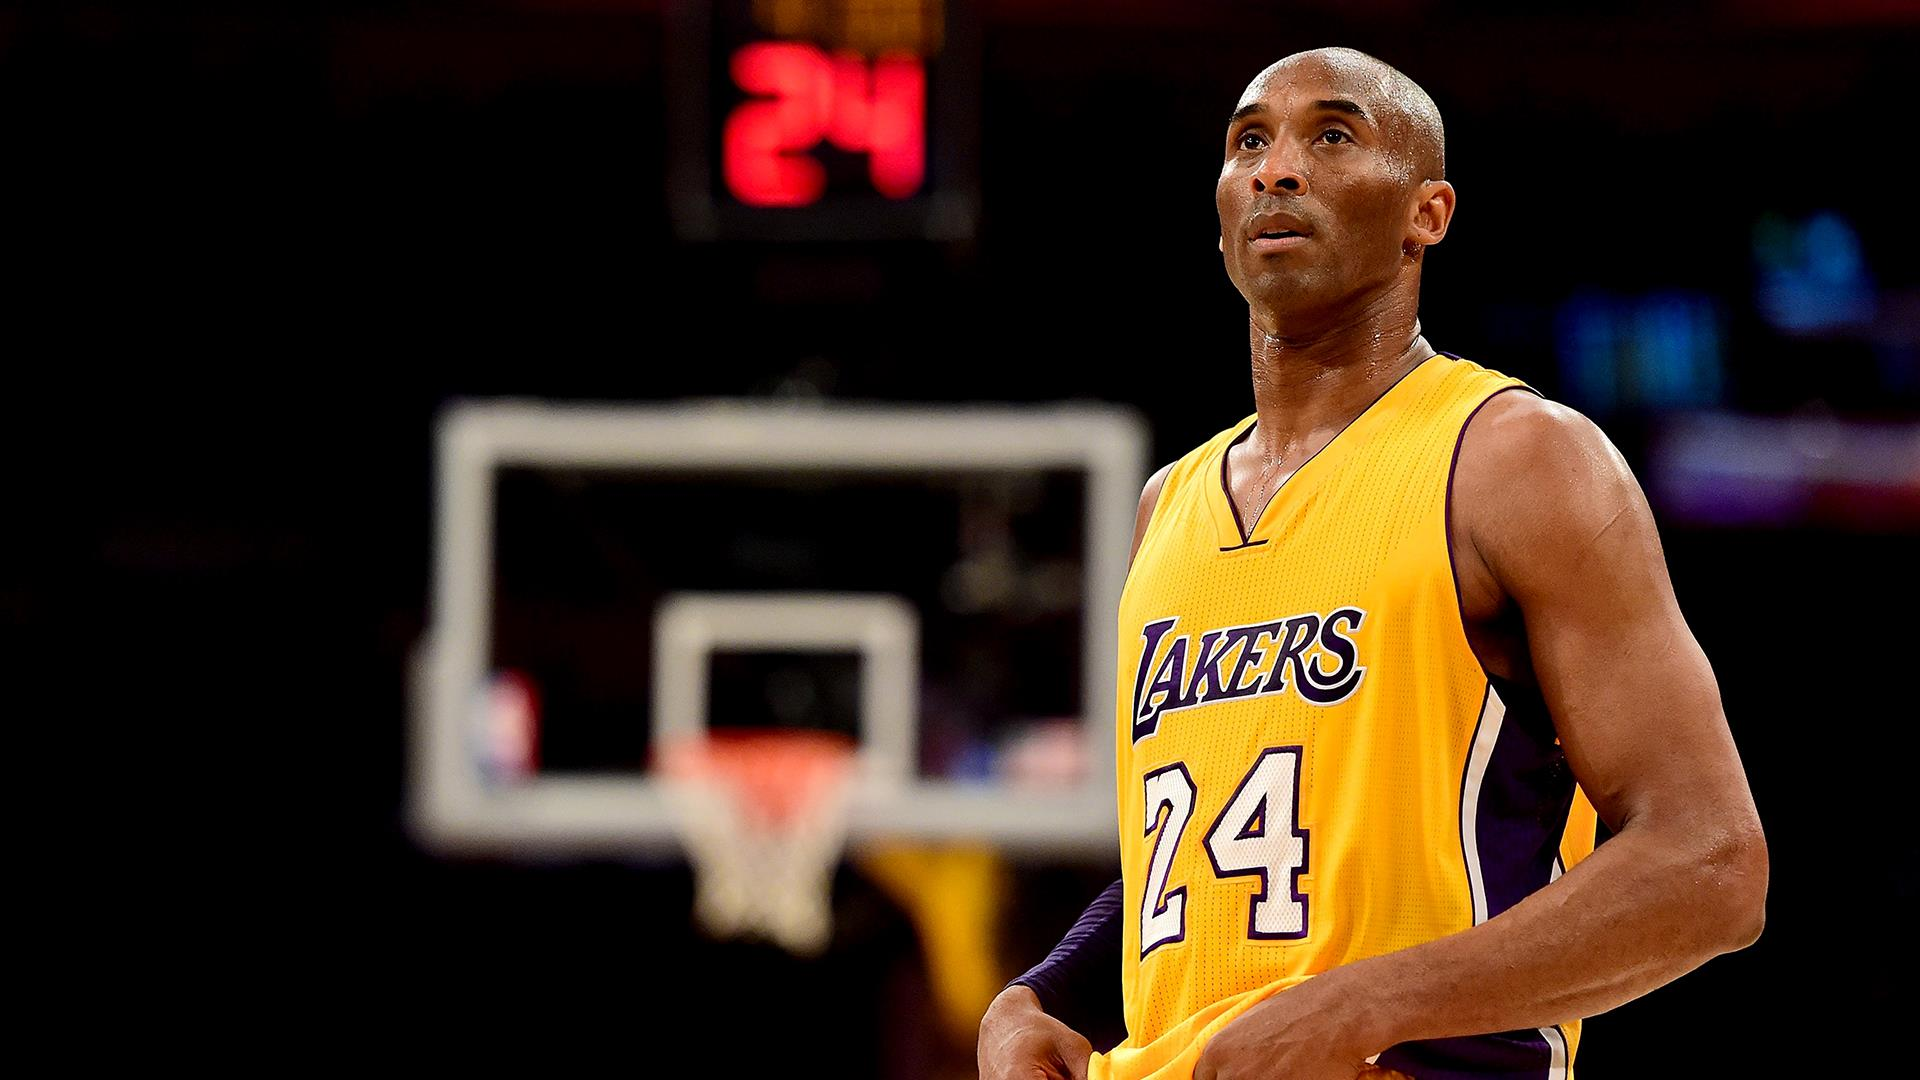 L.A. mourns Kobe Bryant 1 year anniversary of helicopter crash that killed Lakers legend